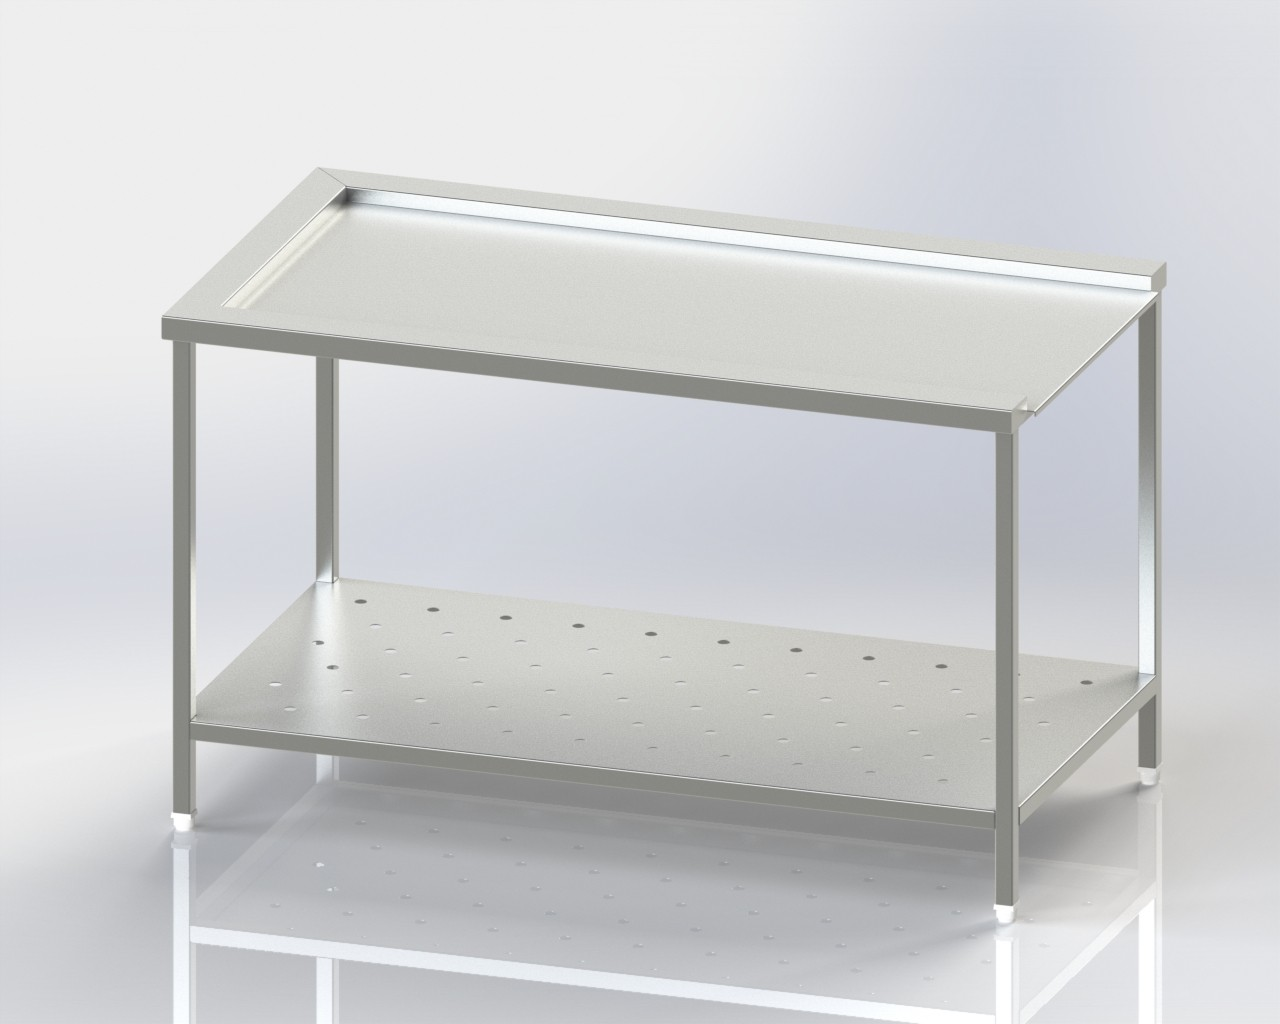 Dish Washer Outlet - Clean Dish Landing Table - Perforated Lower Shelf